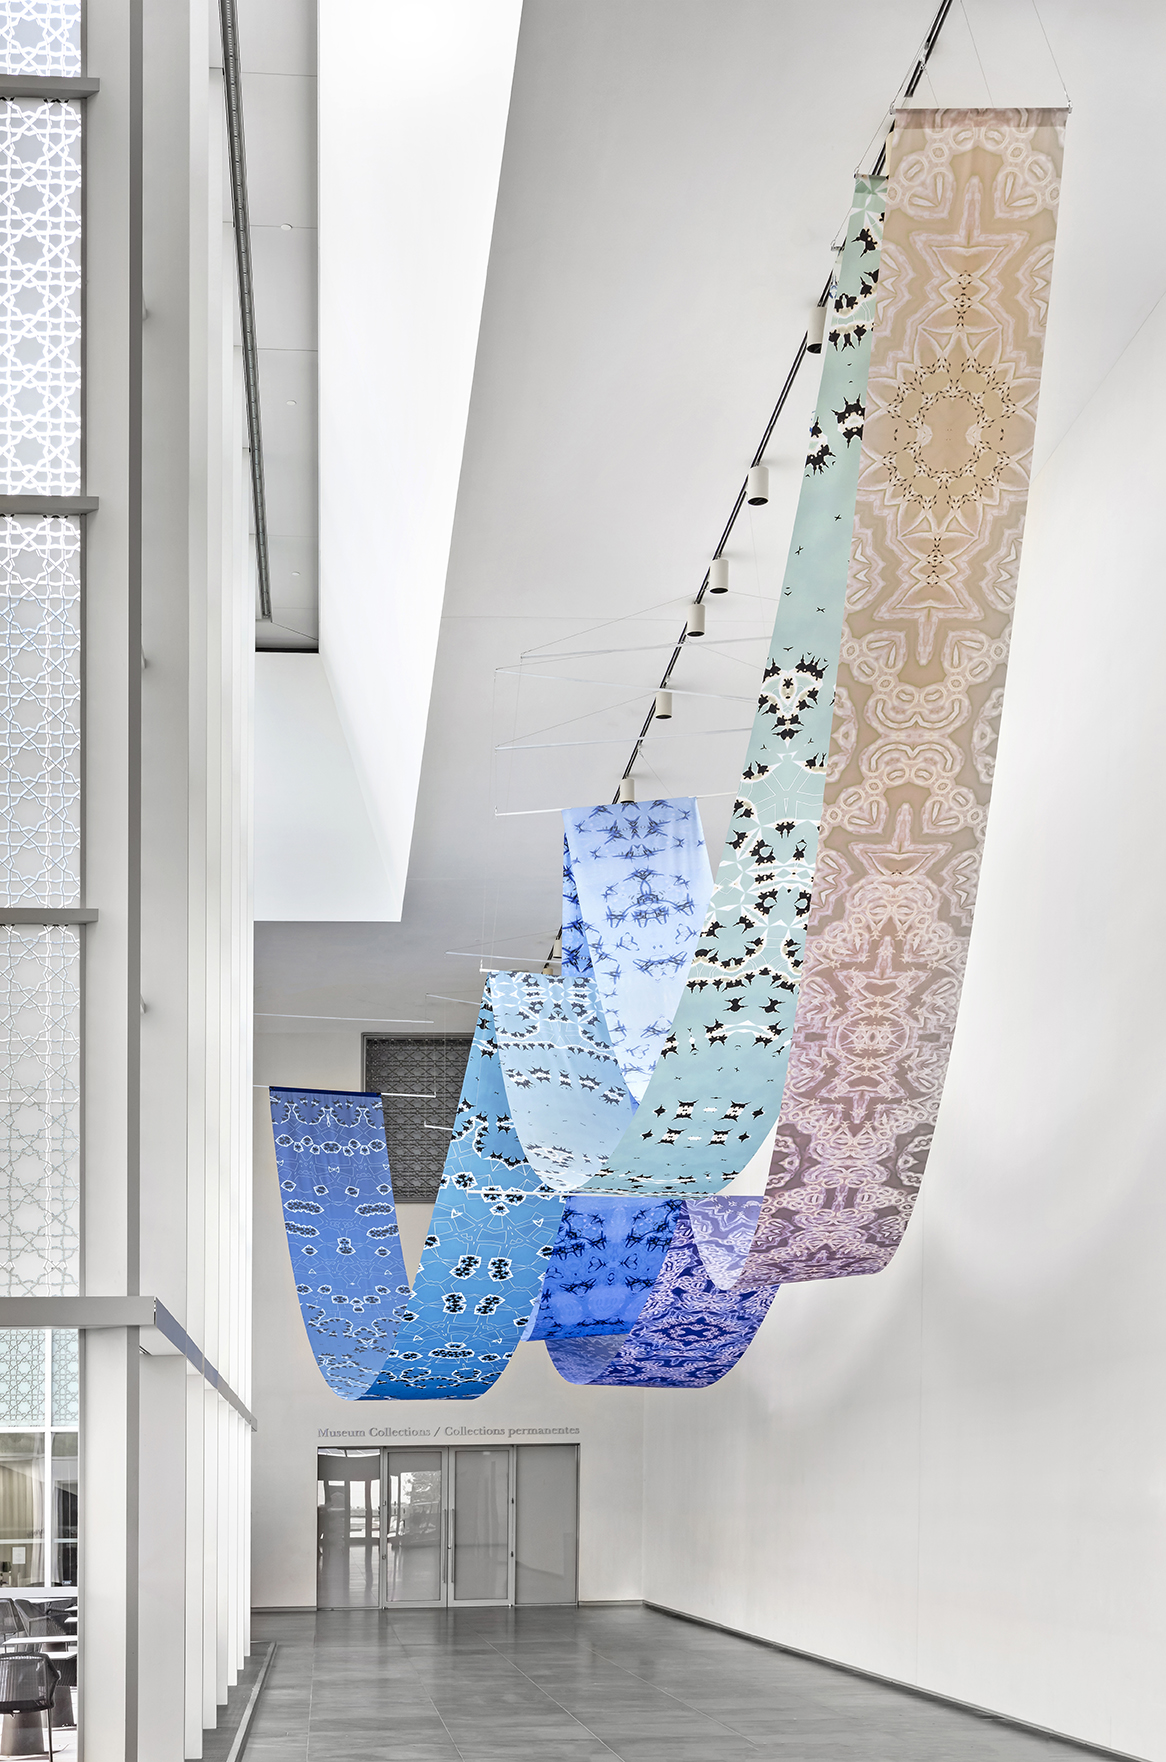 Sanaz Mazinani, Not Elsewhere, Installation at Aga Khan Museum, Toronto, 2019. Photo: Toni Hafkenscheid. Courtesy CONTACT, the artist.